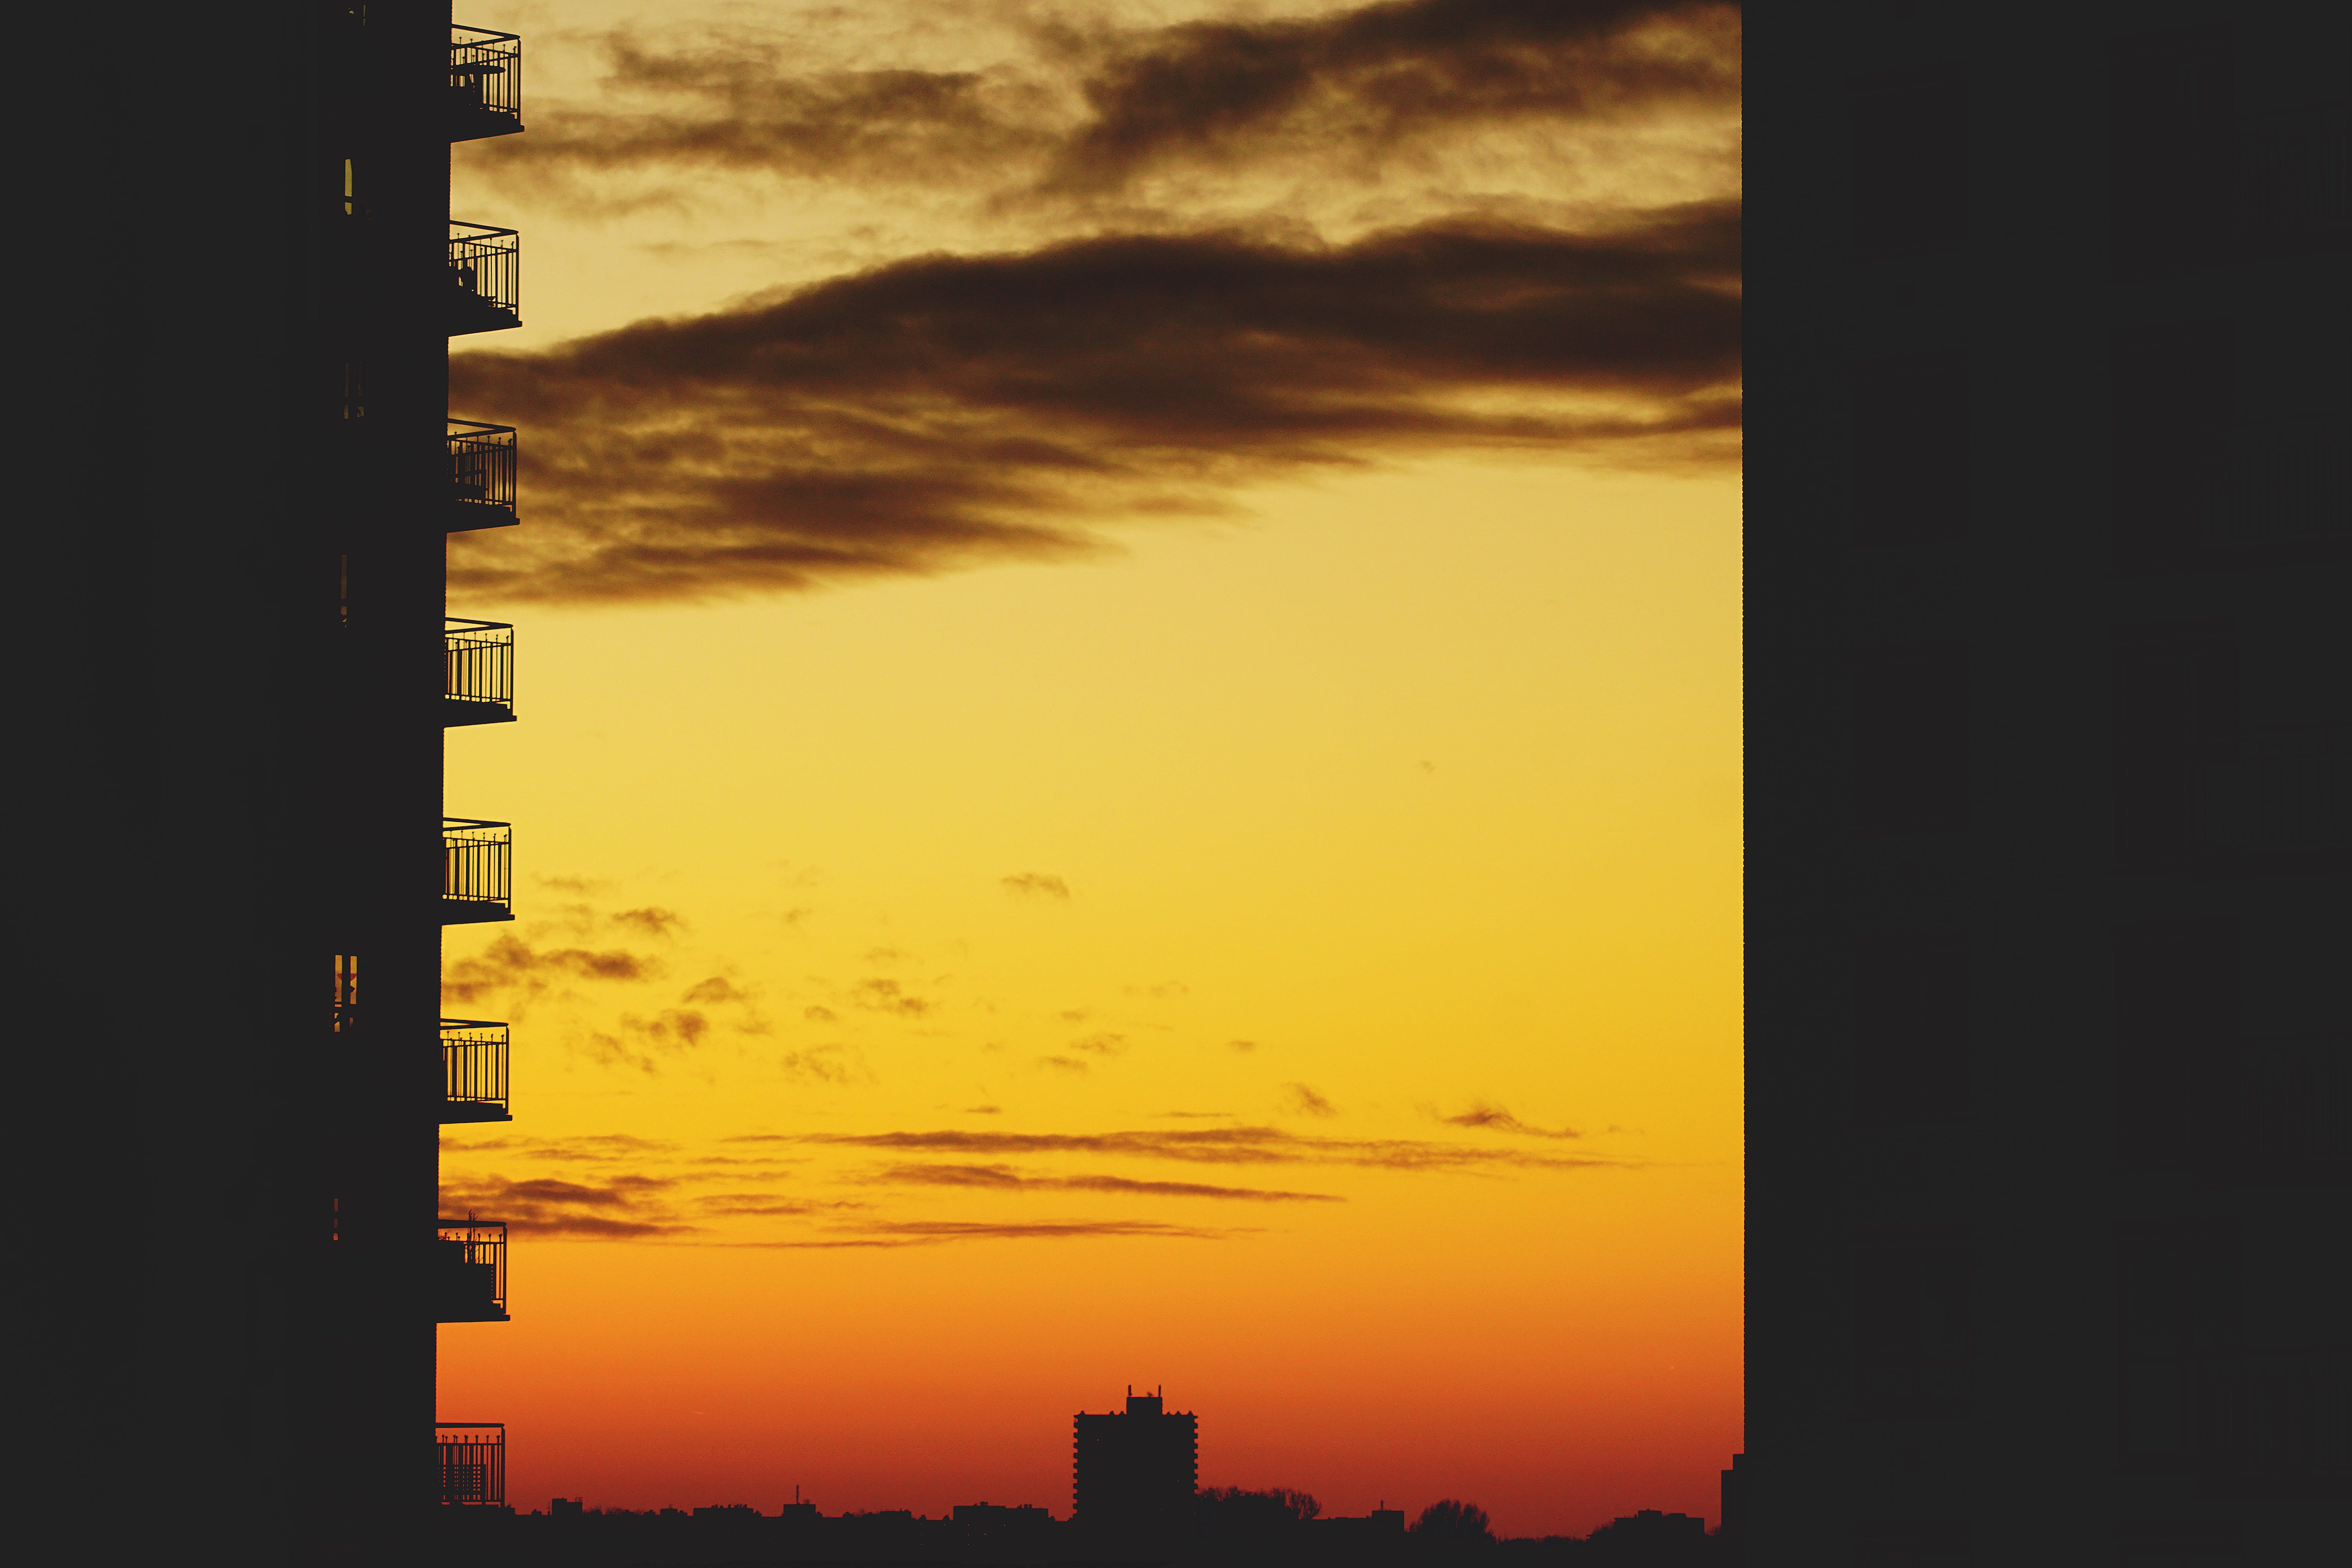 Photo Of High-rise Building During Golden Hour